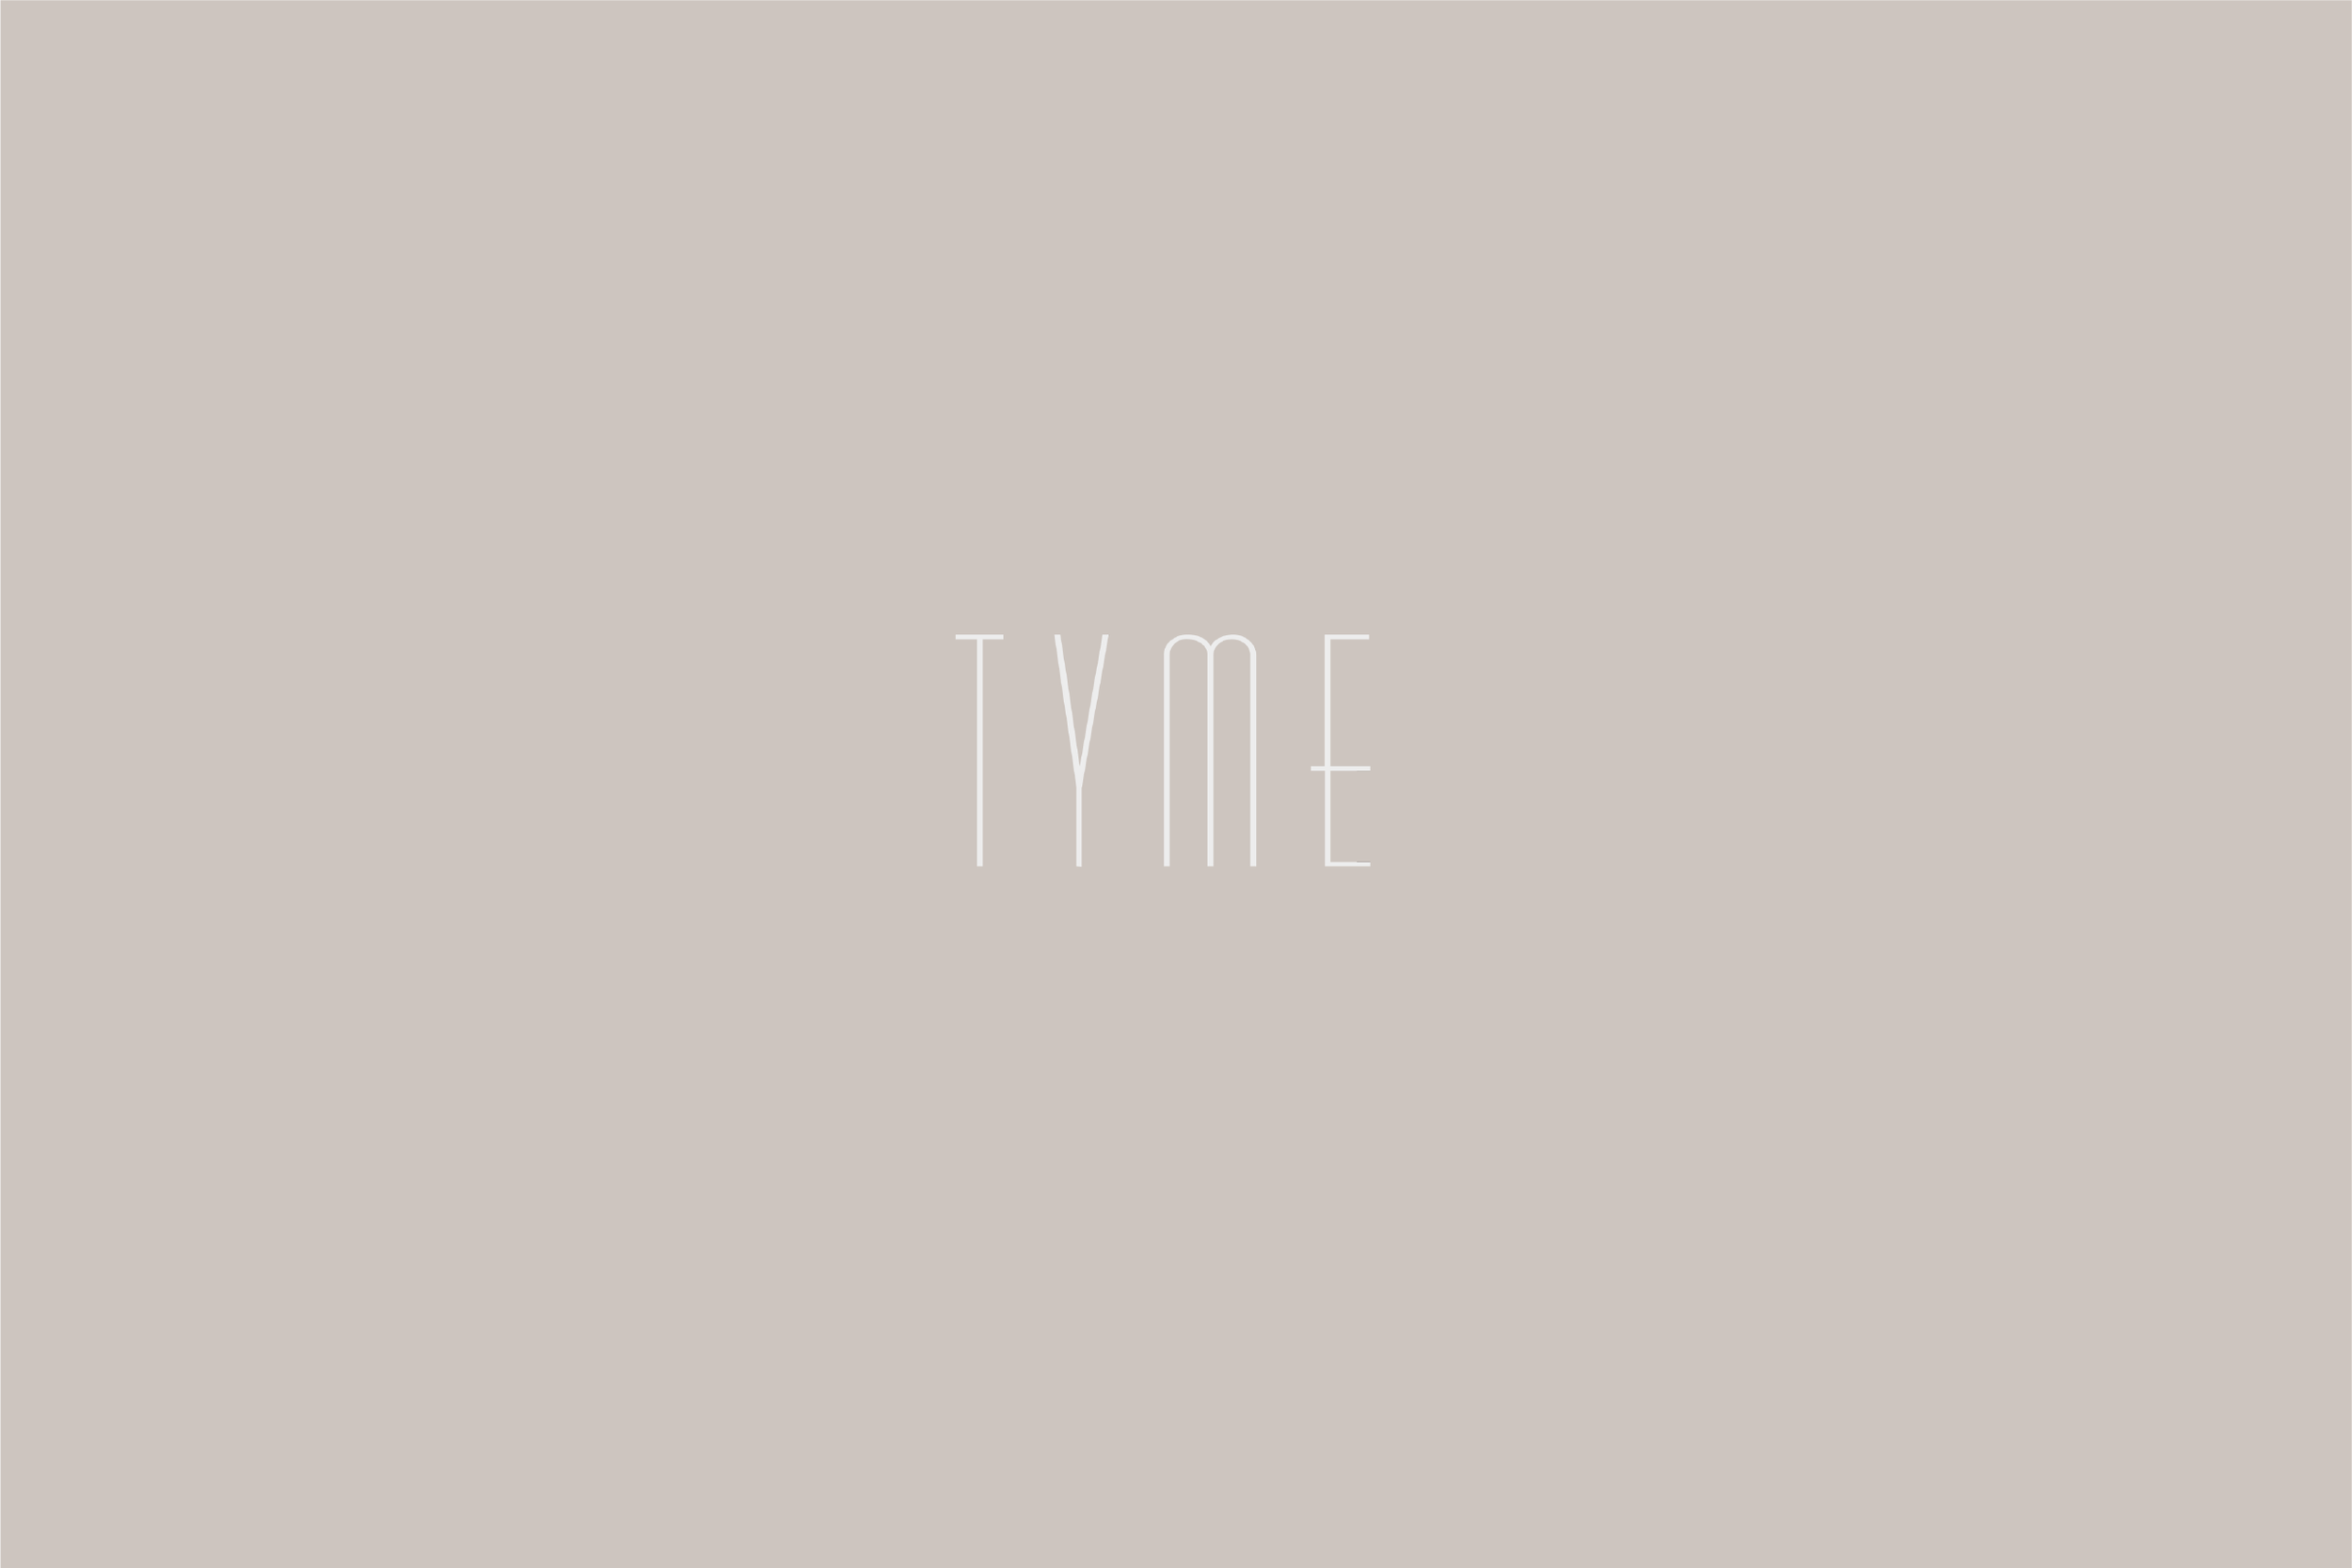 anthos+tyme+photography+brand+collateral-01.png